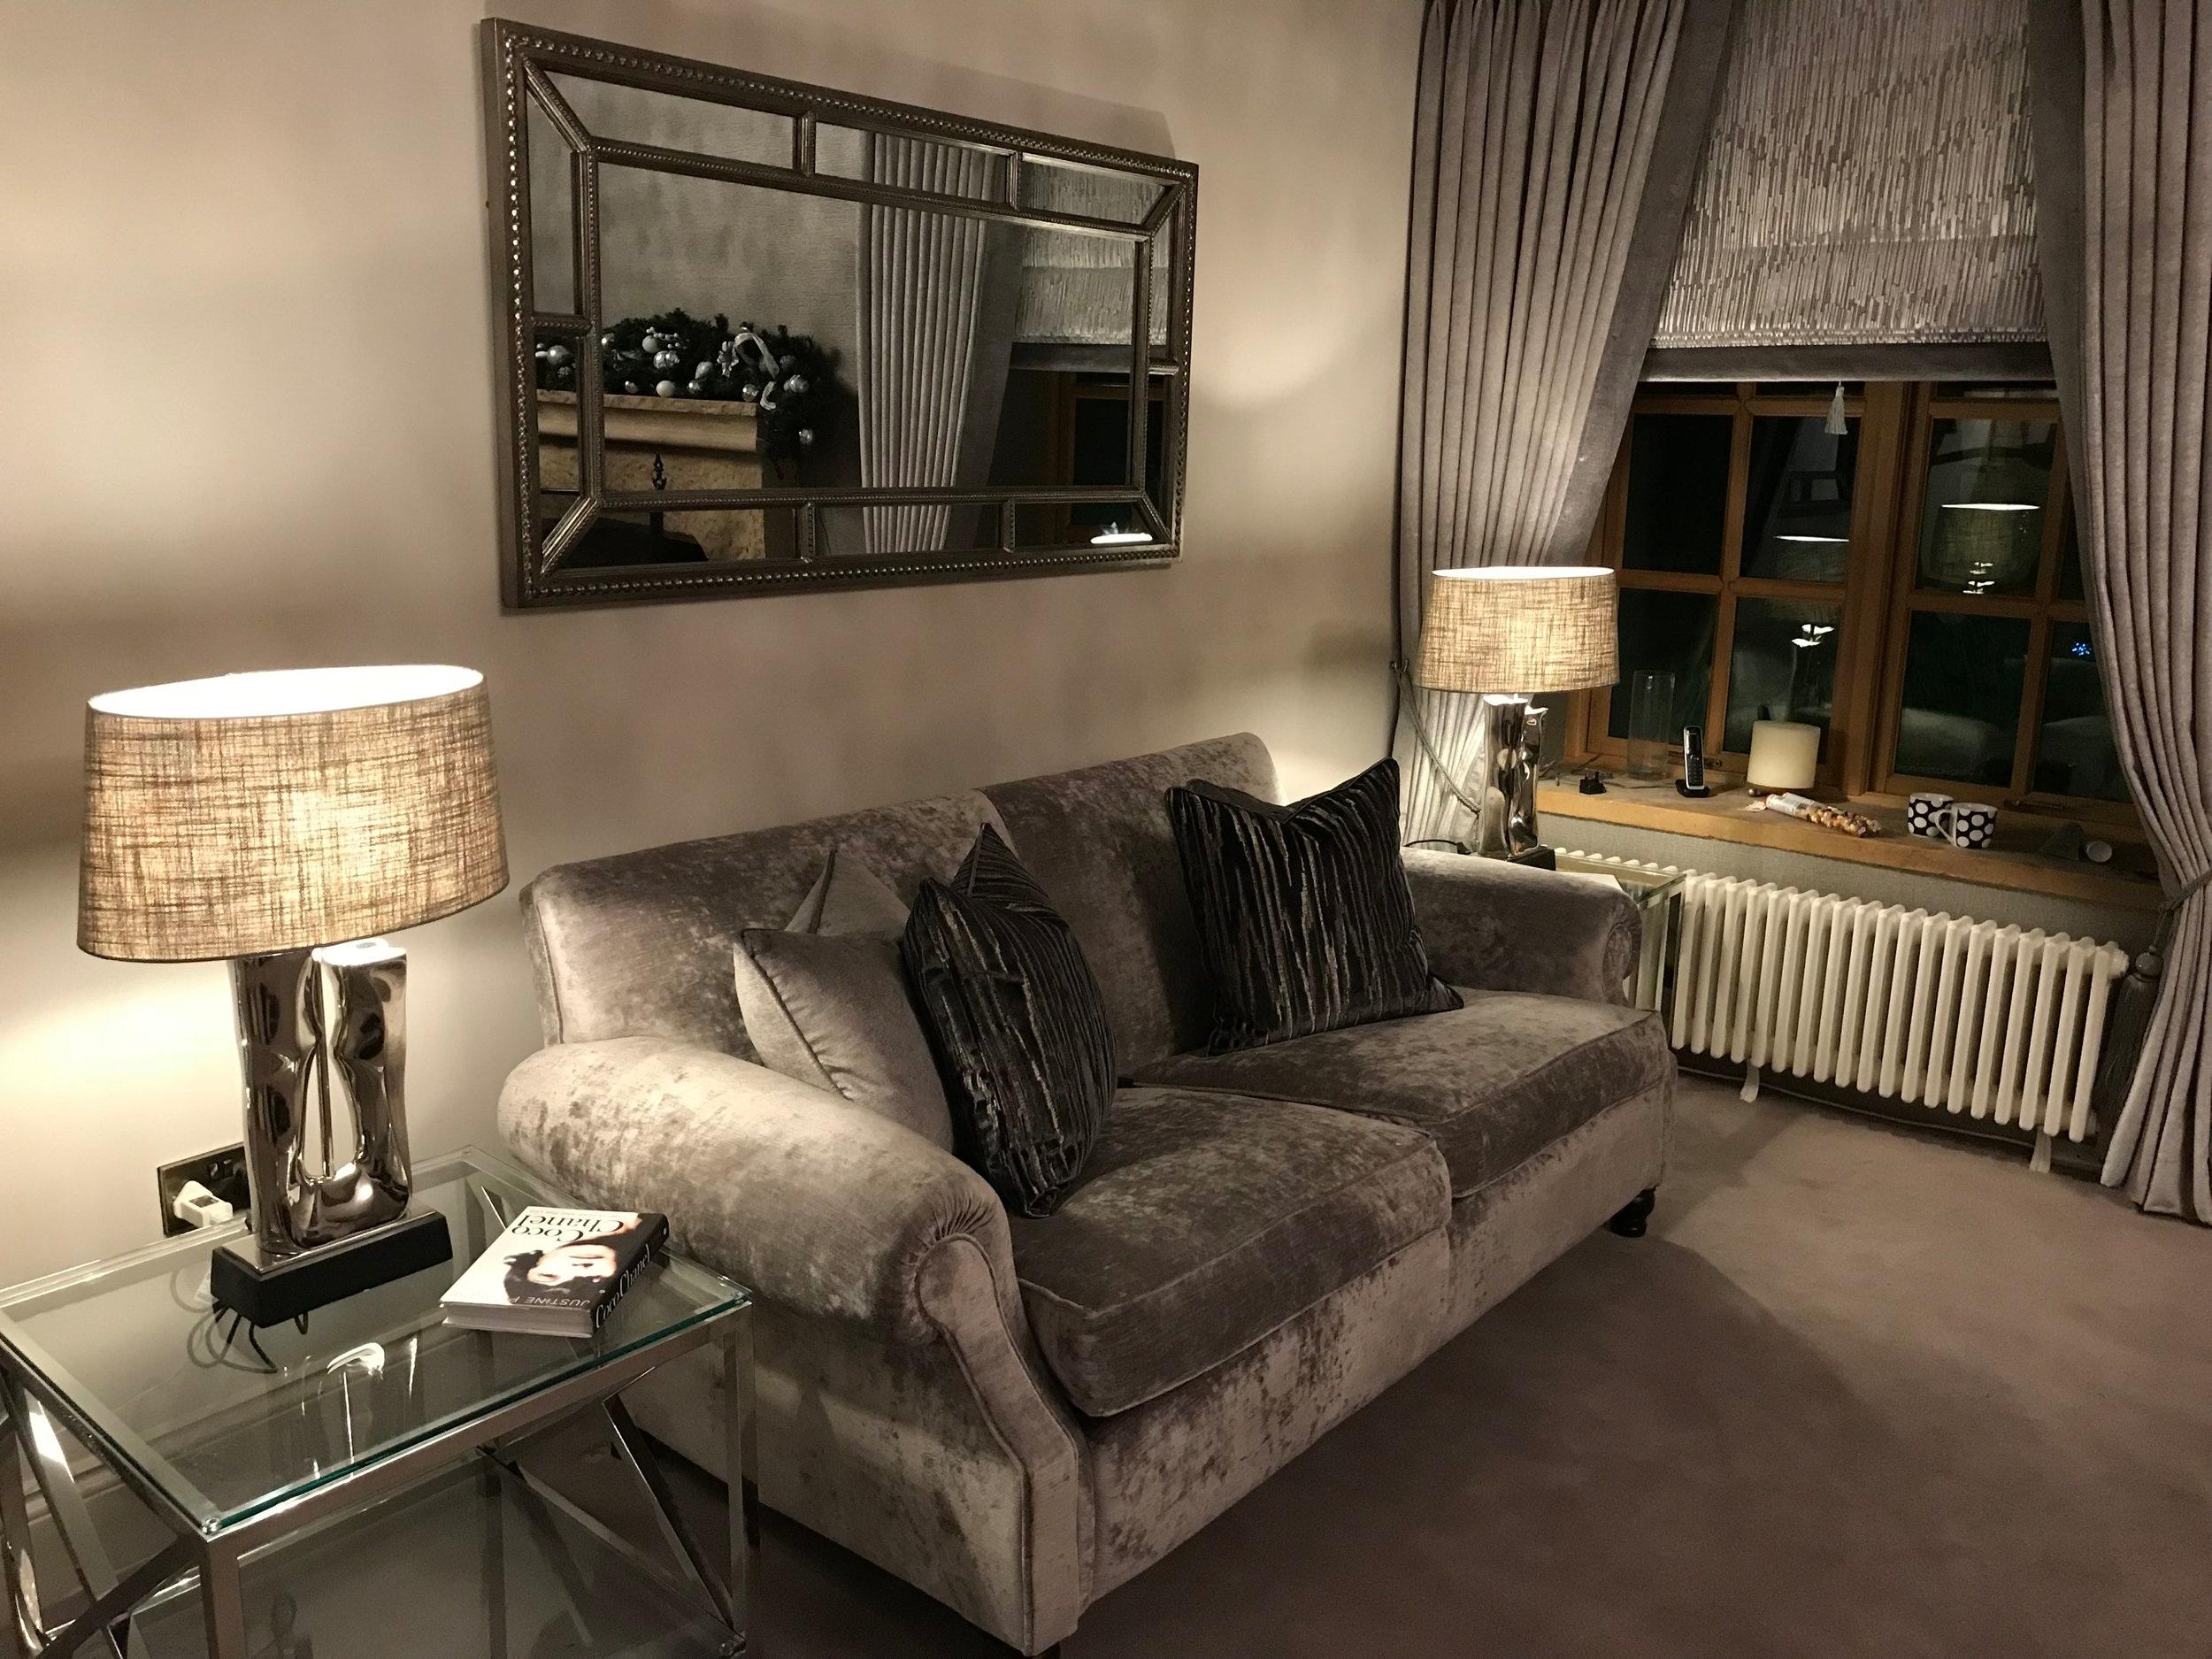 LUXURY BESPOKE INTERIORS   Handmade in Yorkshire   Find out more